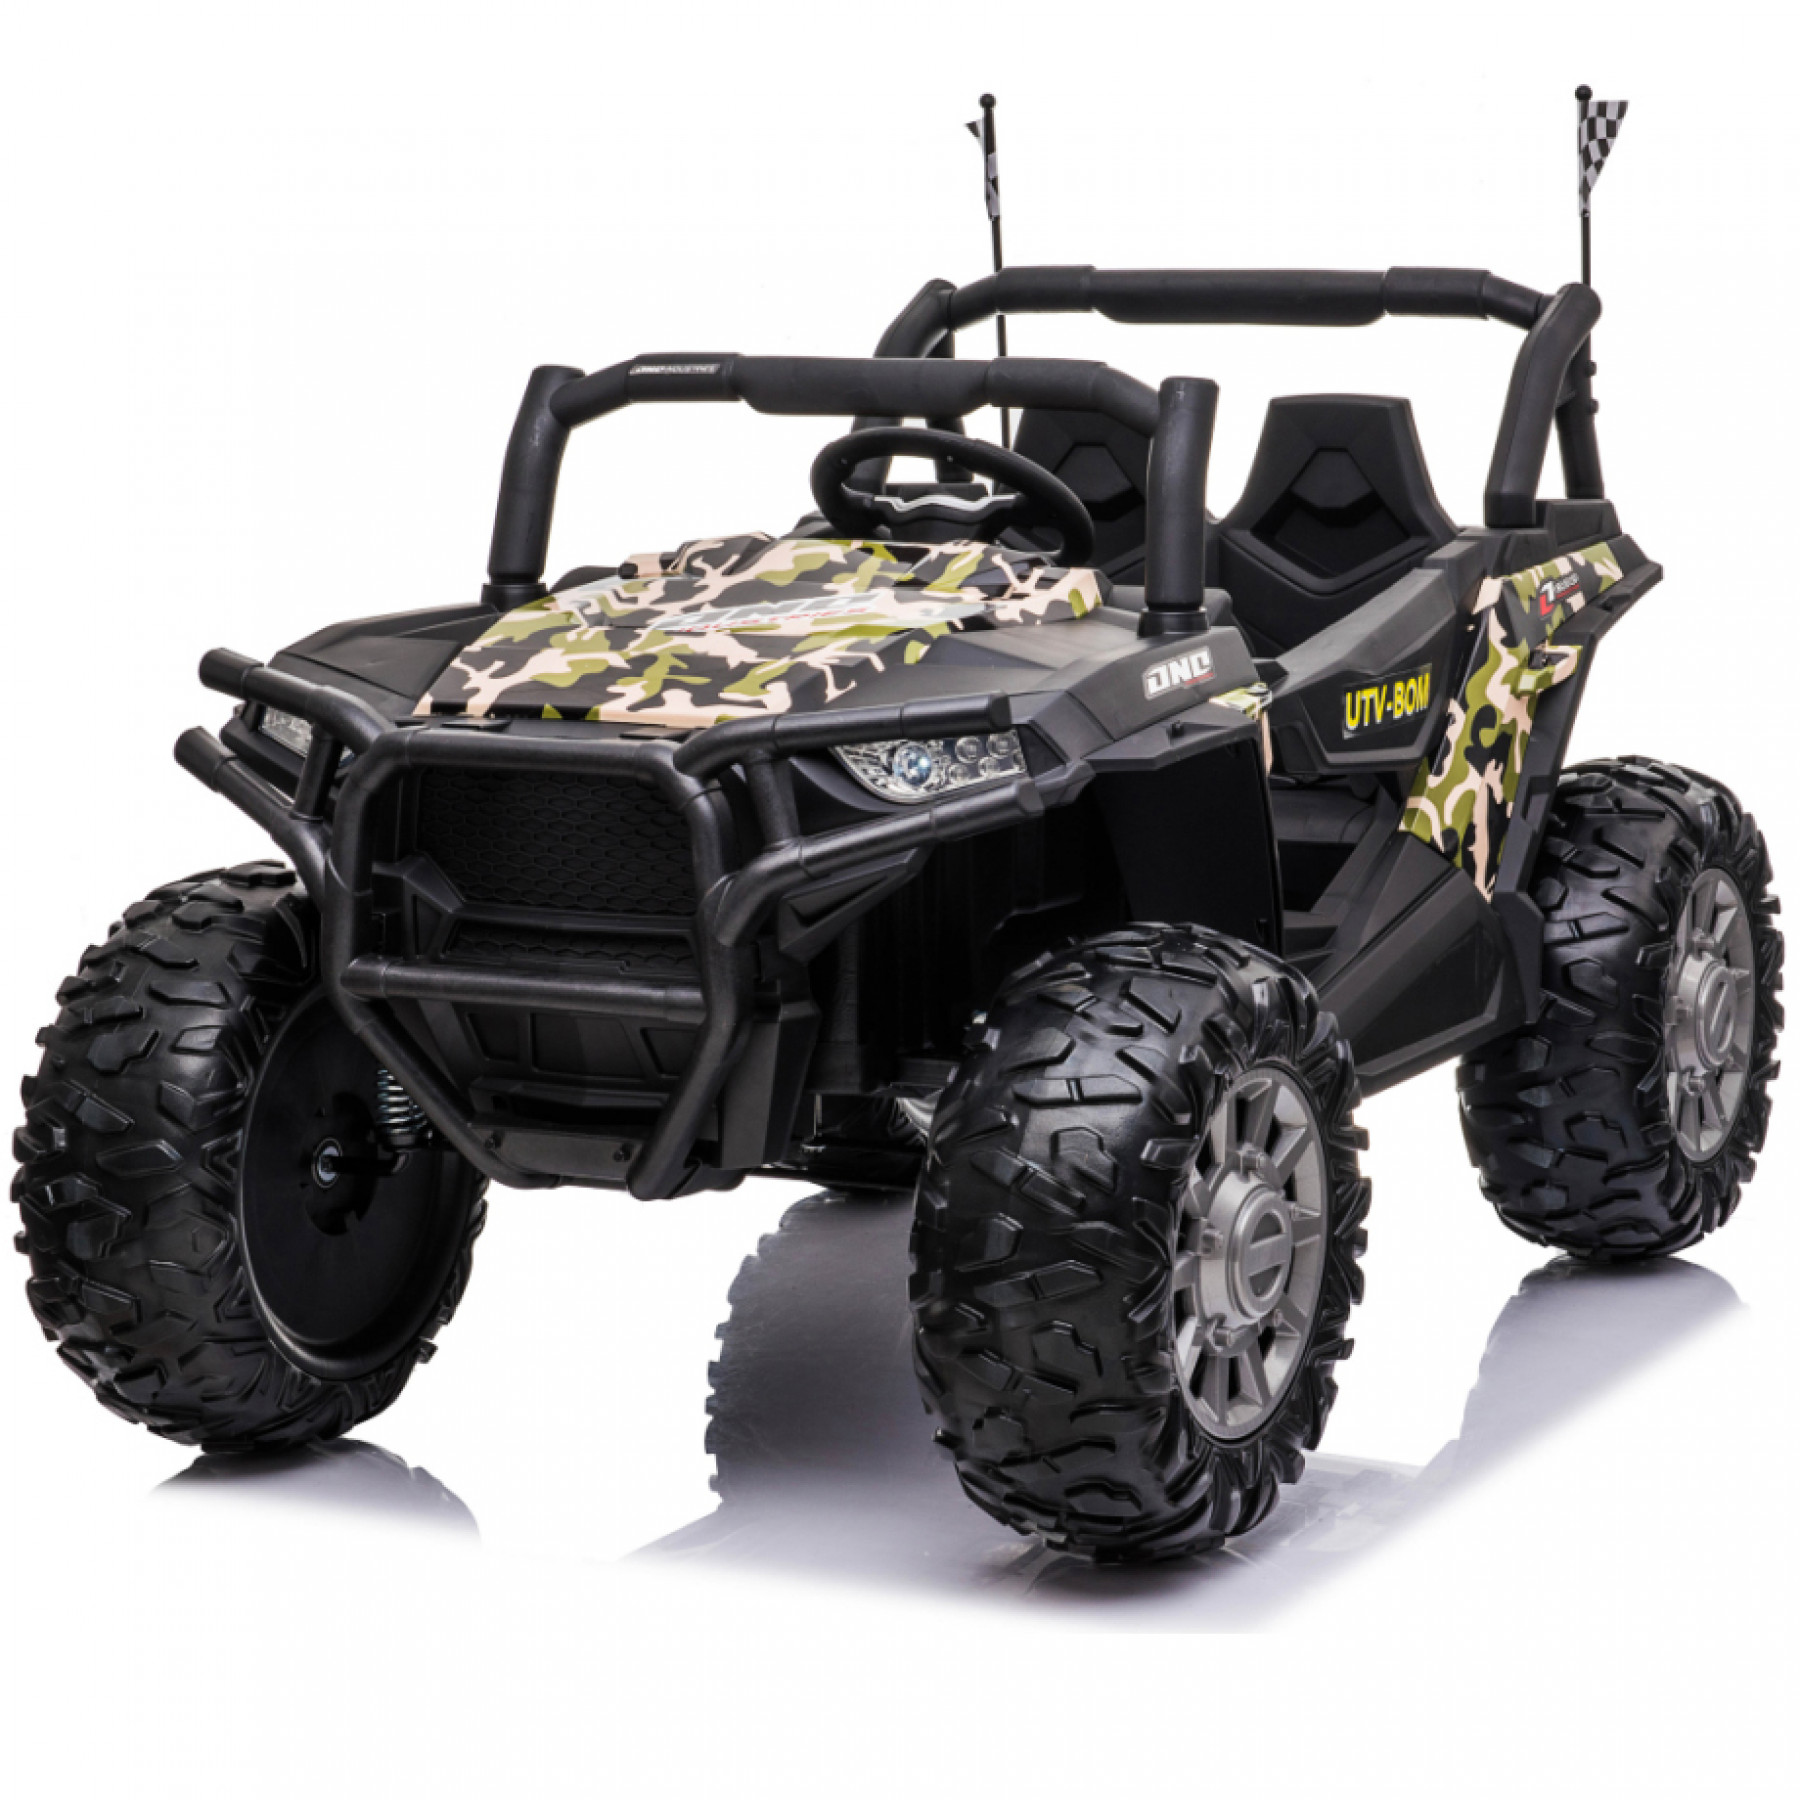 Xtreme BIG 24v Ride on Buggy Off Road UTV Jeep Painted Camouflage Green